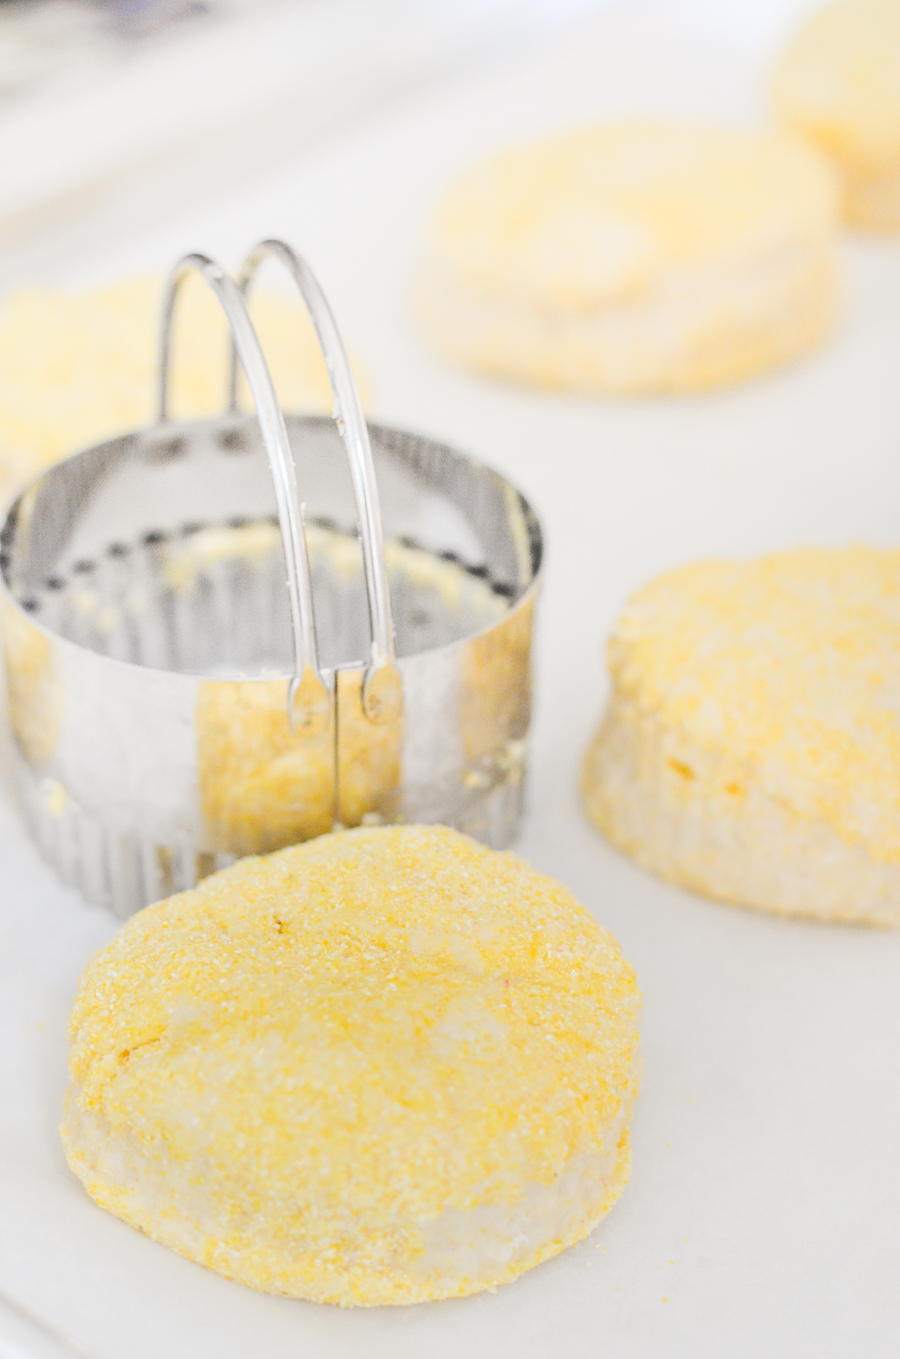 Homemade Butter Biscuits - Buttery Cornmeal Biscuits with Biscuit Cutter